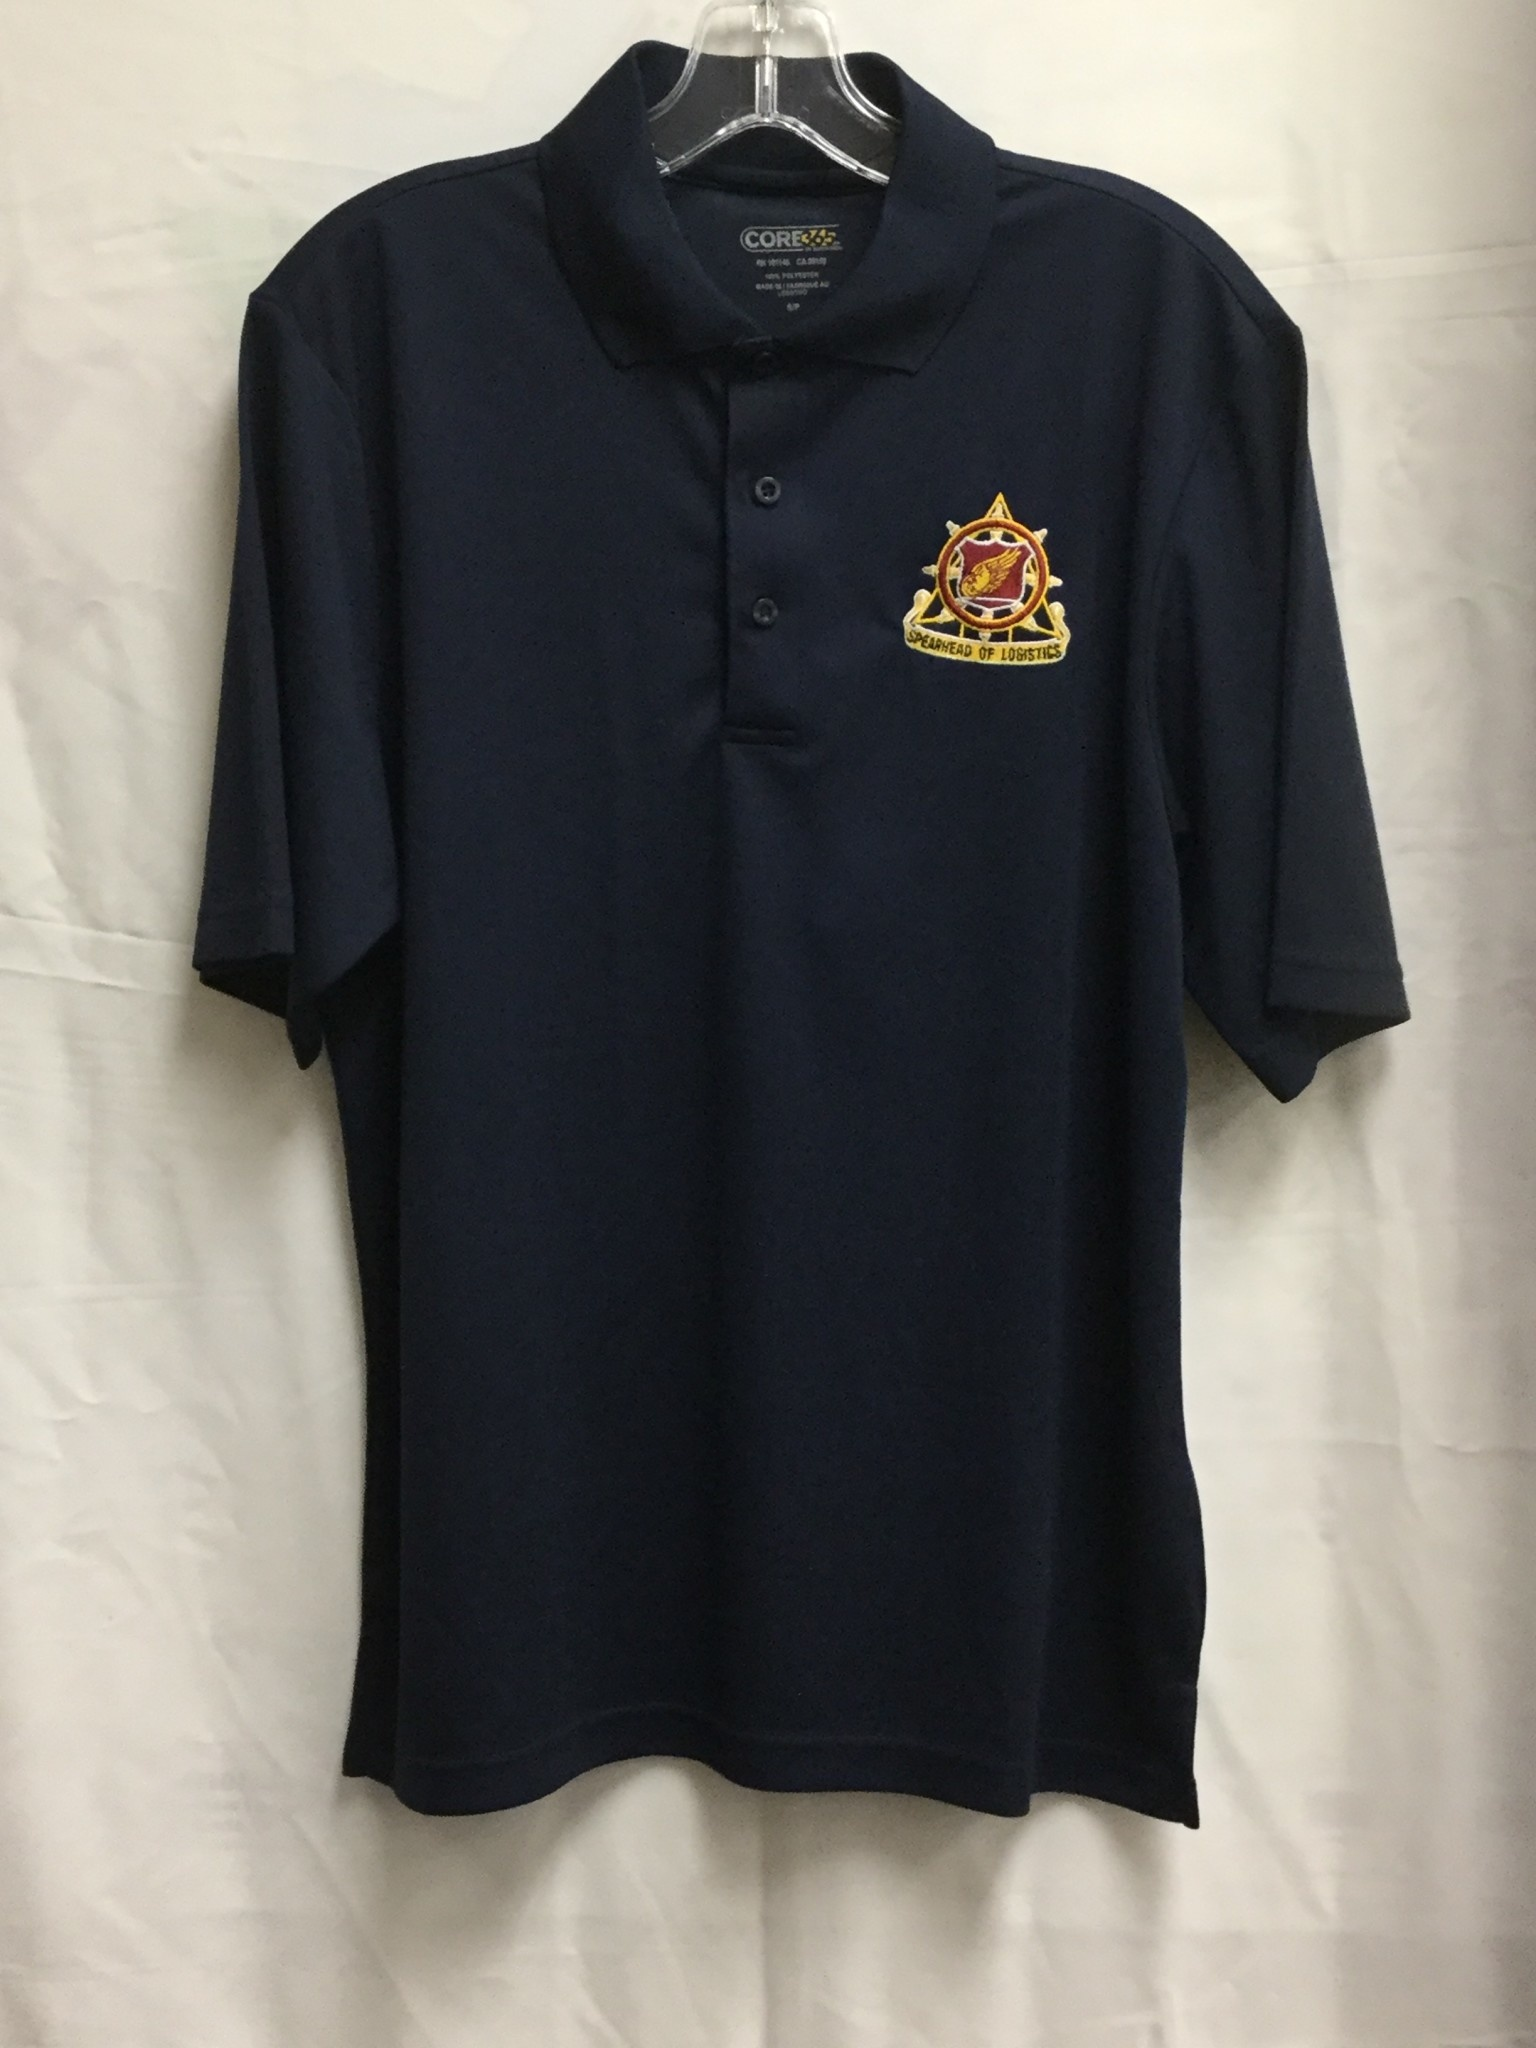 GOLF REGT NAVY 2XL